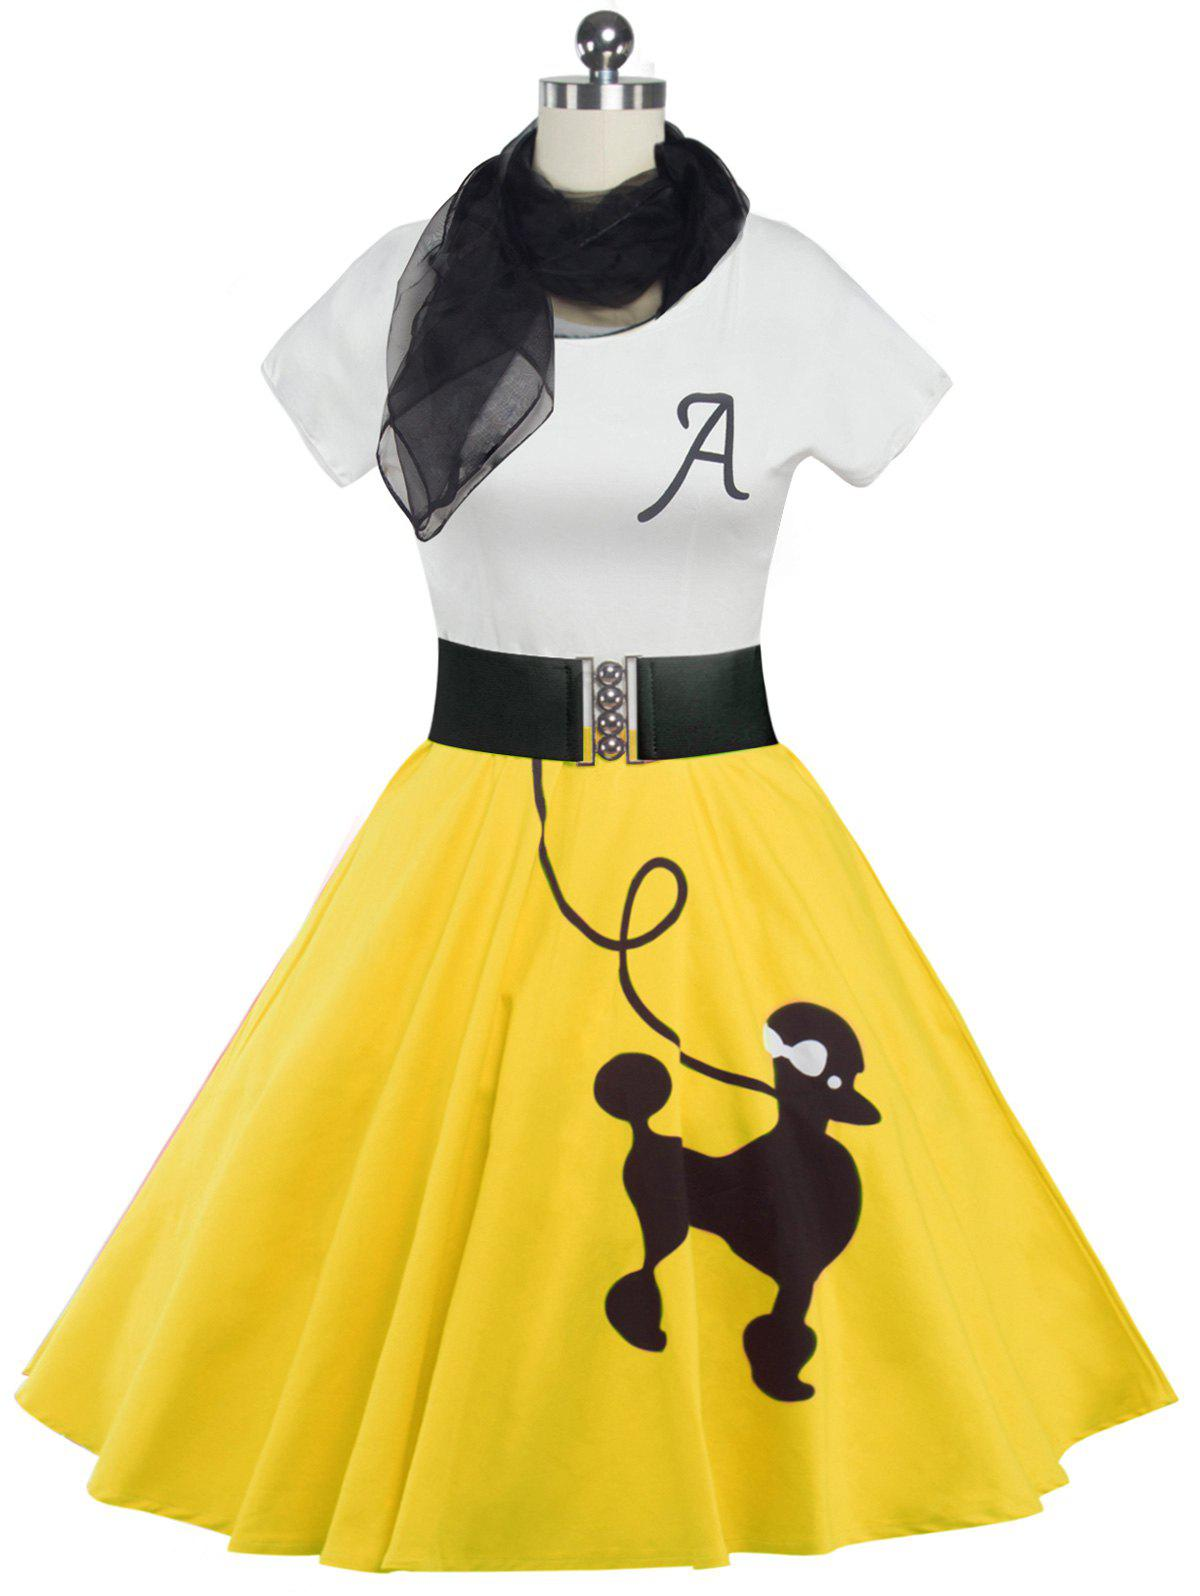 Retro Poodle Print High Waist Skater Dress - YELLOW XL